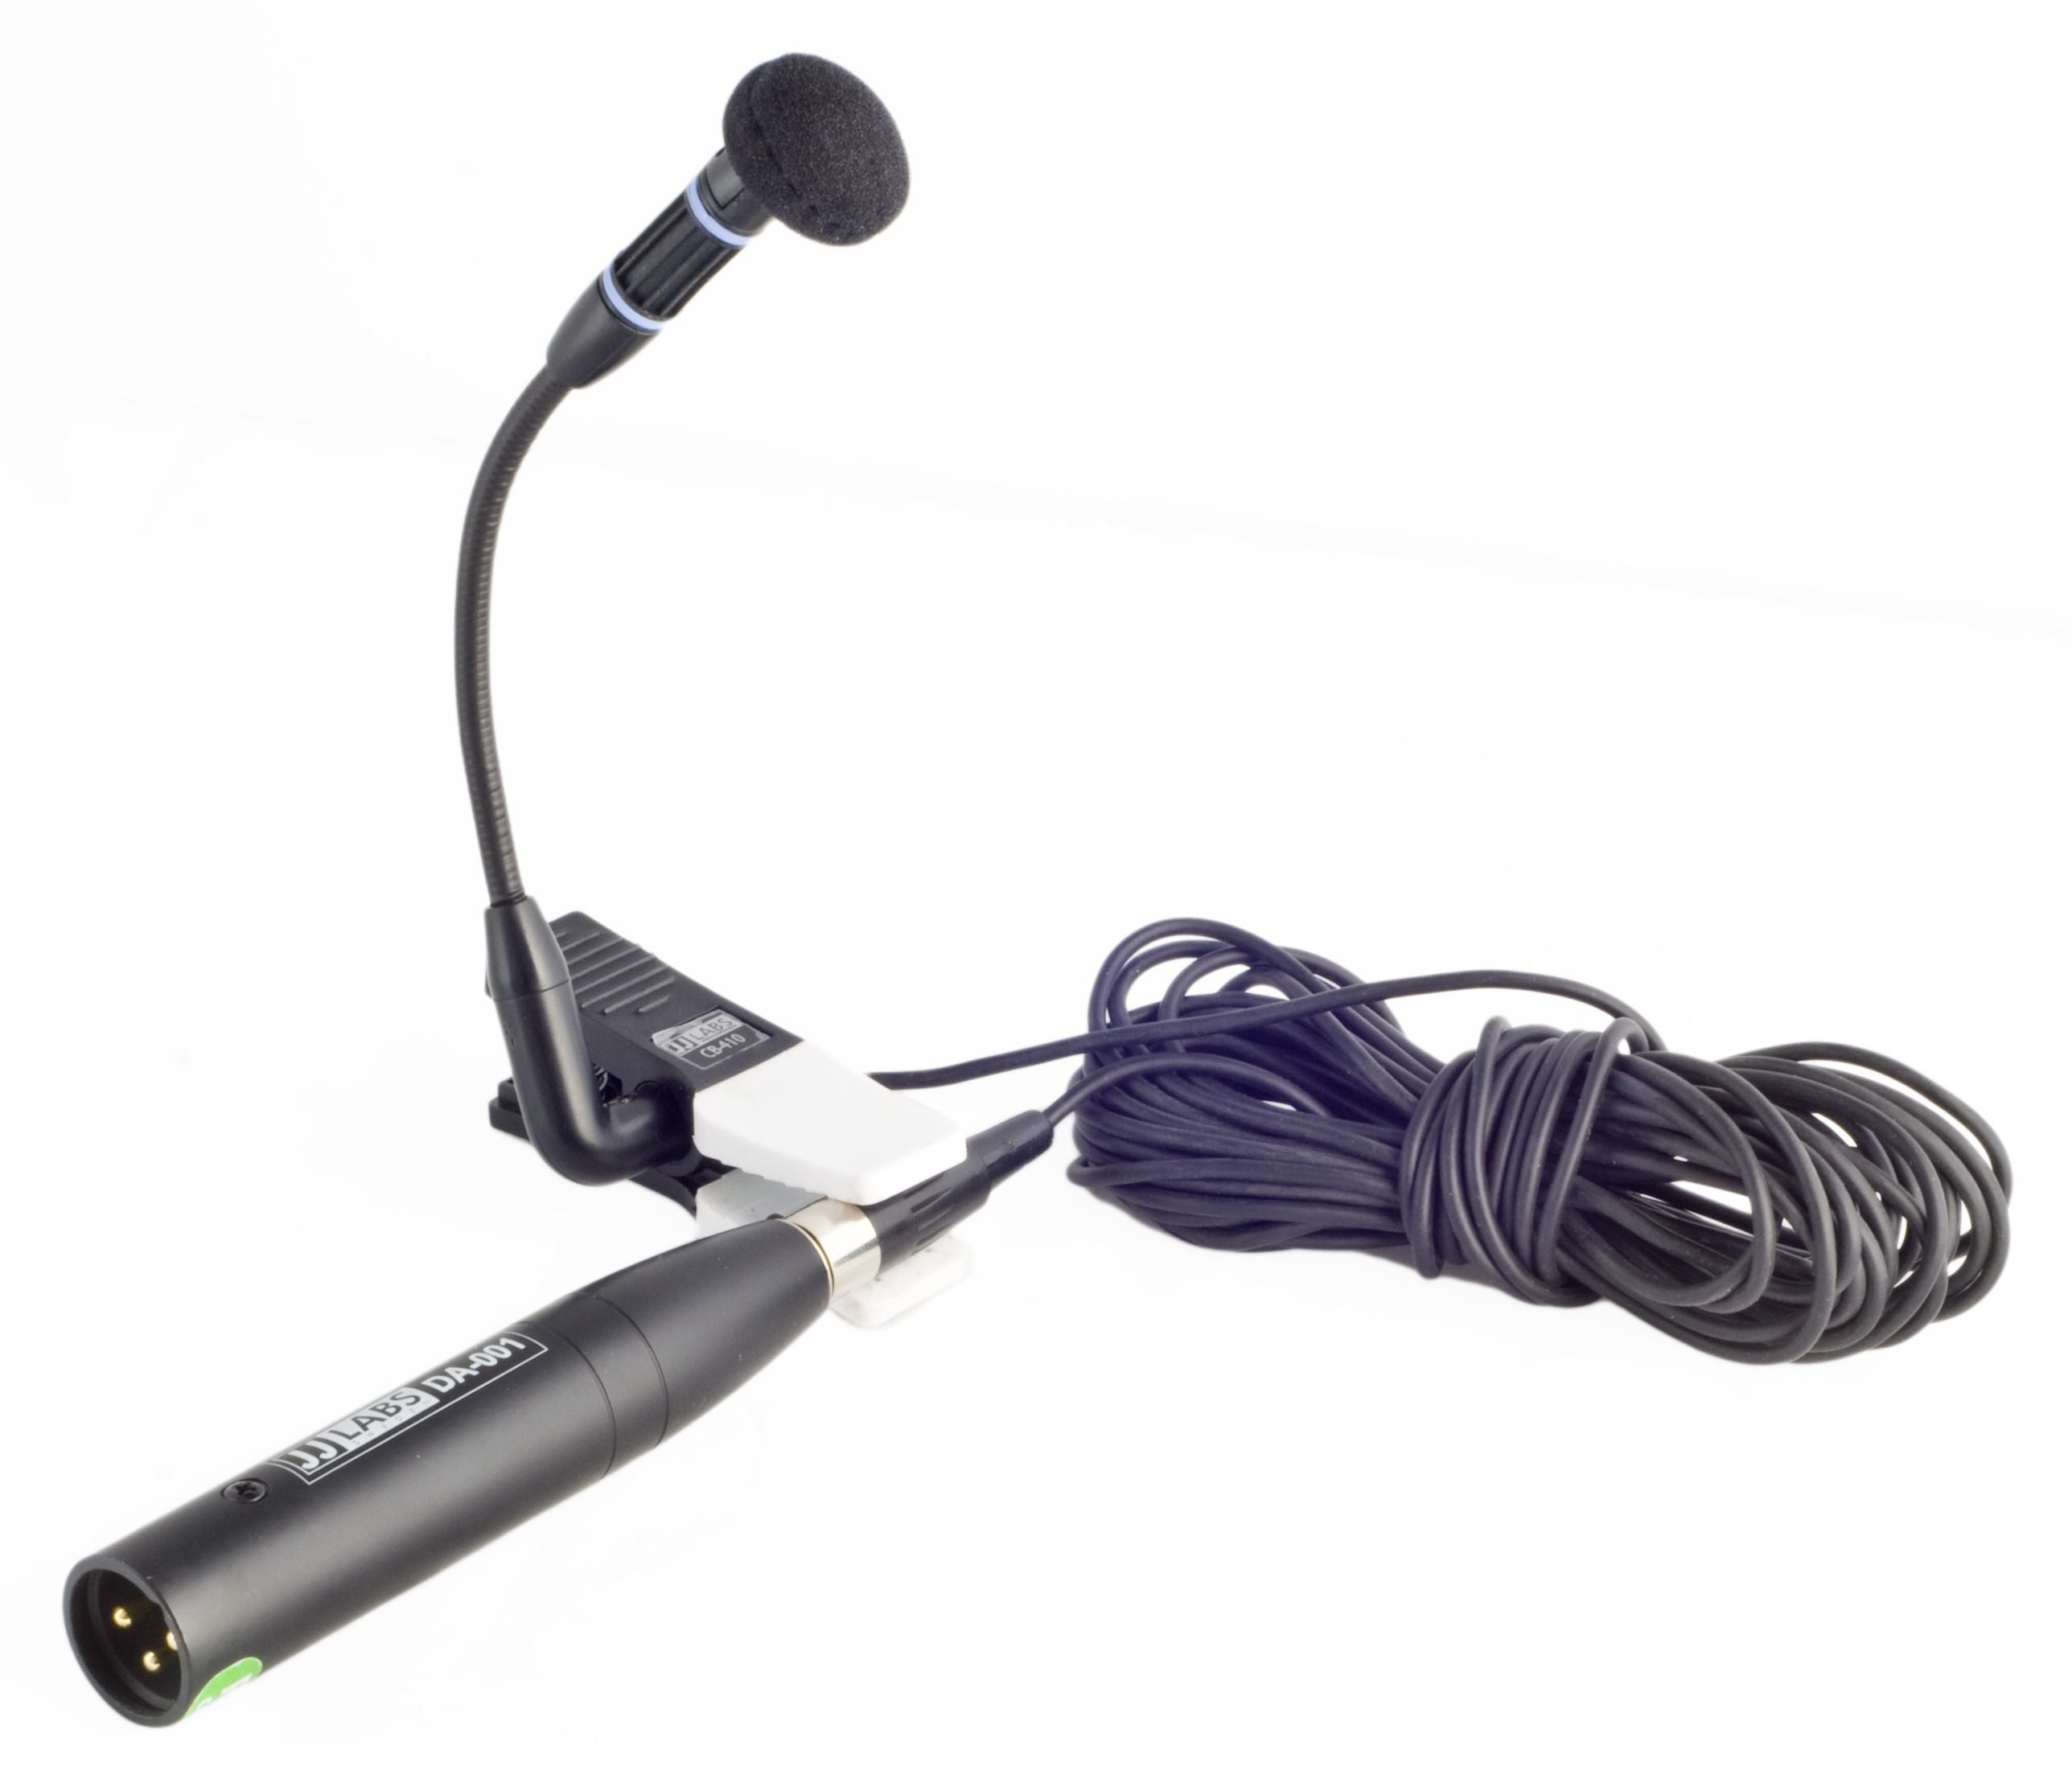 Jjlabs Cb 410 Sound Light Rental Event Media Studio Acquris Electret Microphone To Xlr Wiring Together With Sc4060 Dpa Microphones Security